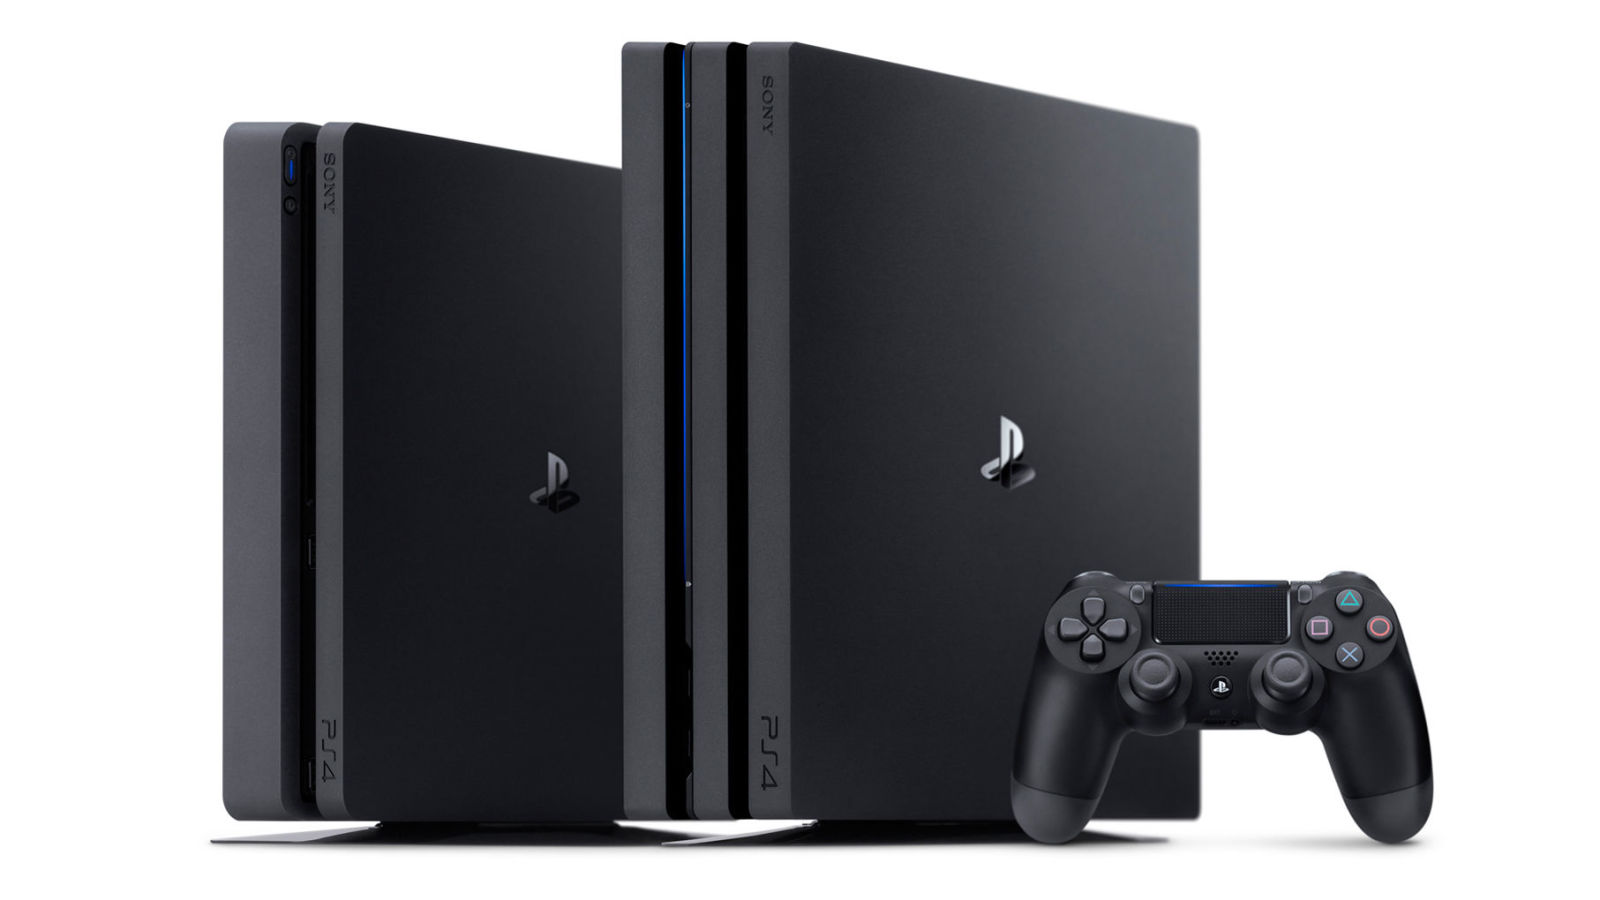 ps4-slim-and-ps4-pro